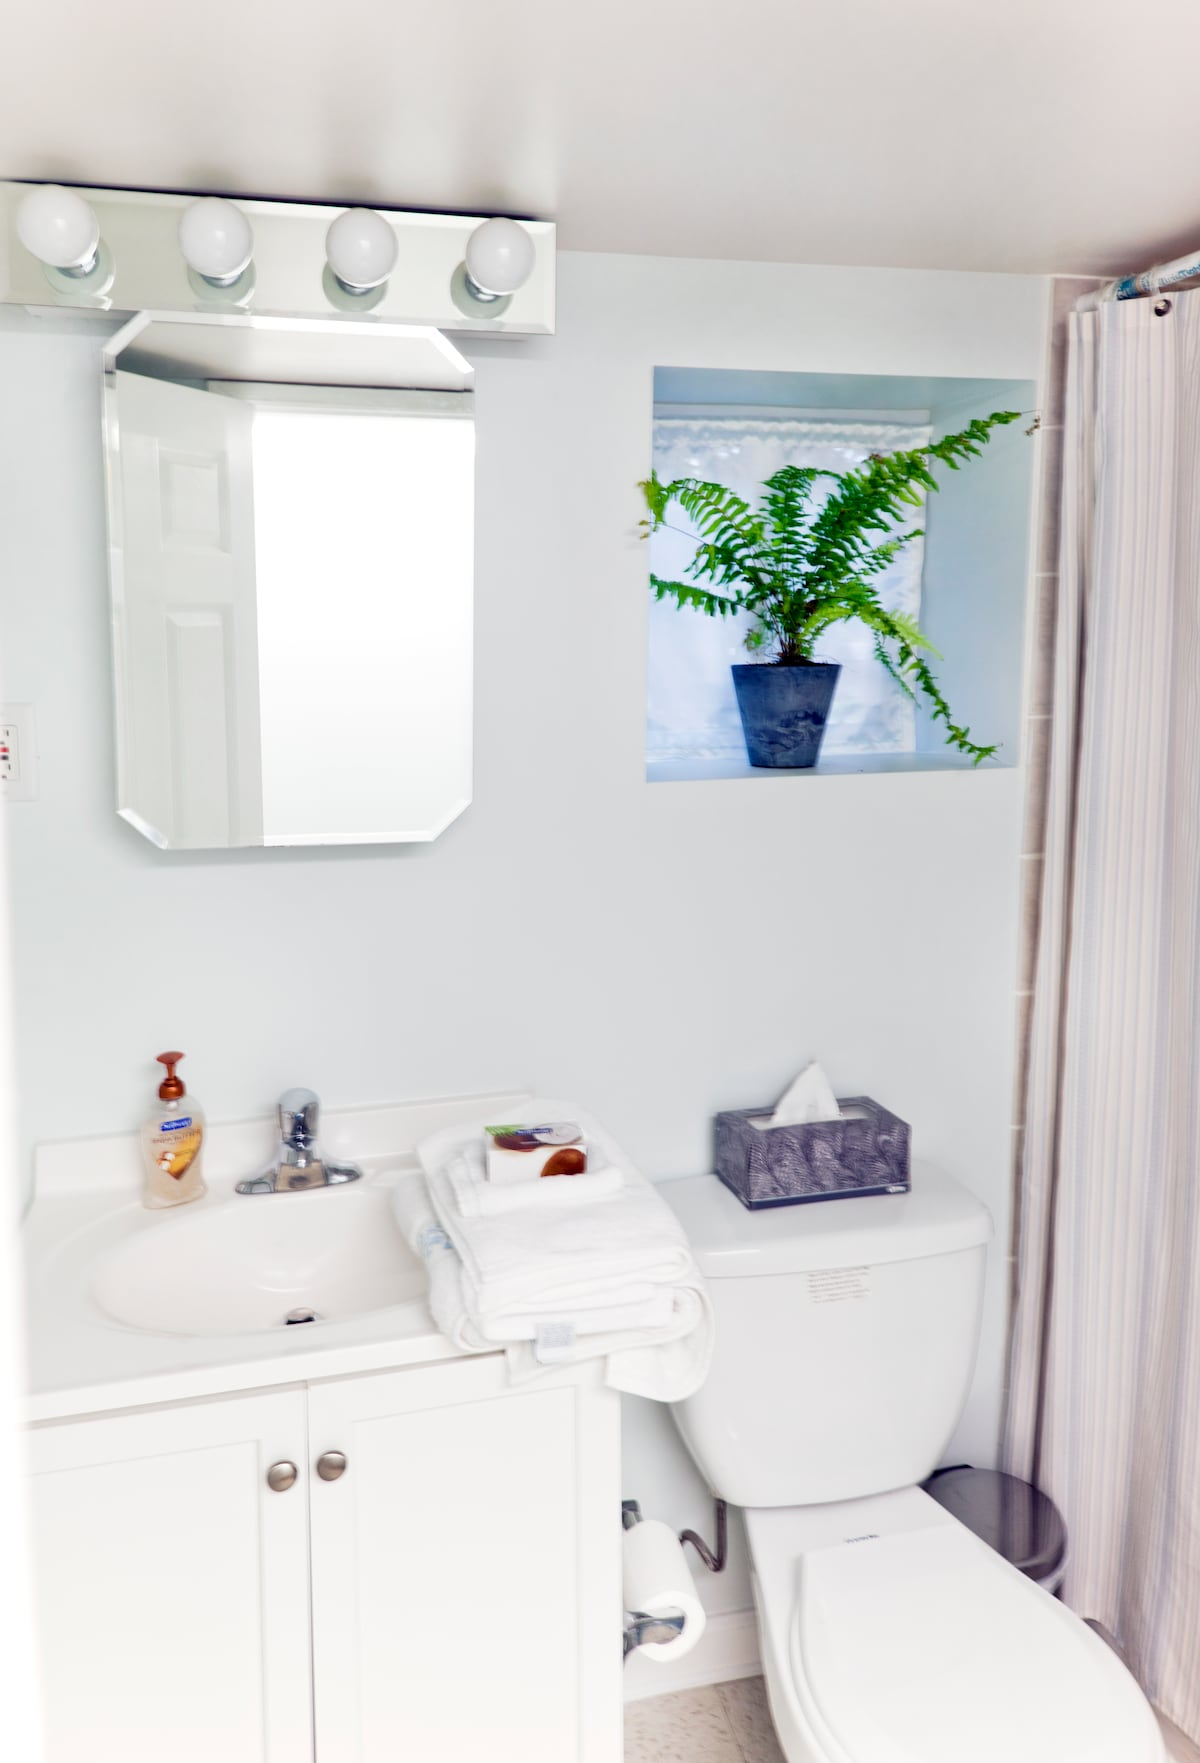 Your own bathroom with towels, hairdryer, shampoo, body wash provided